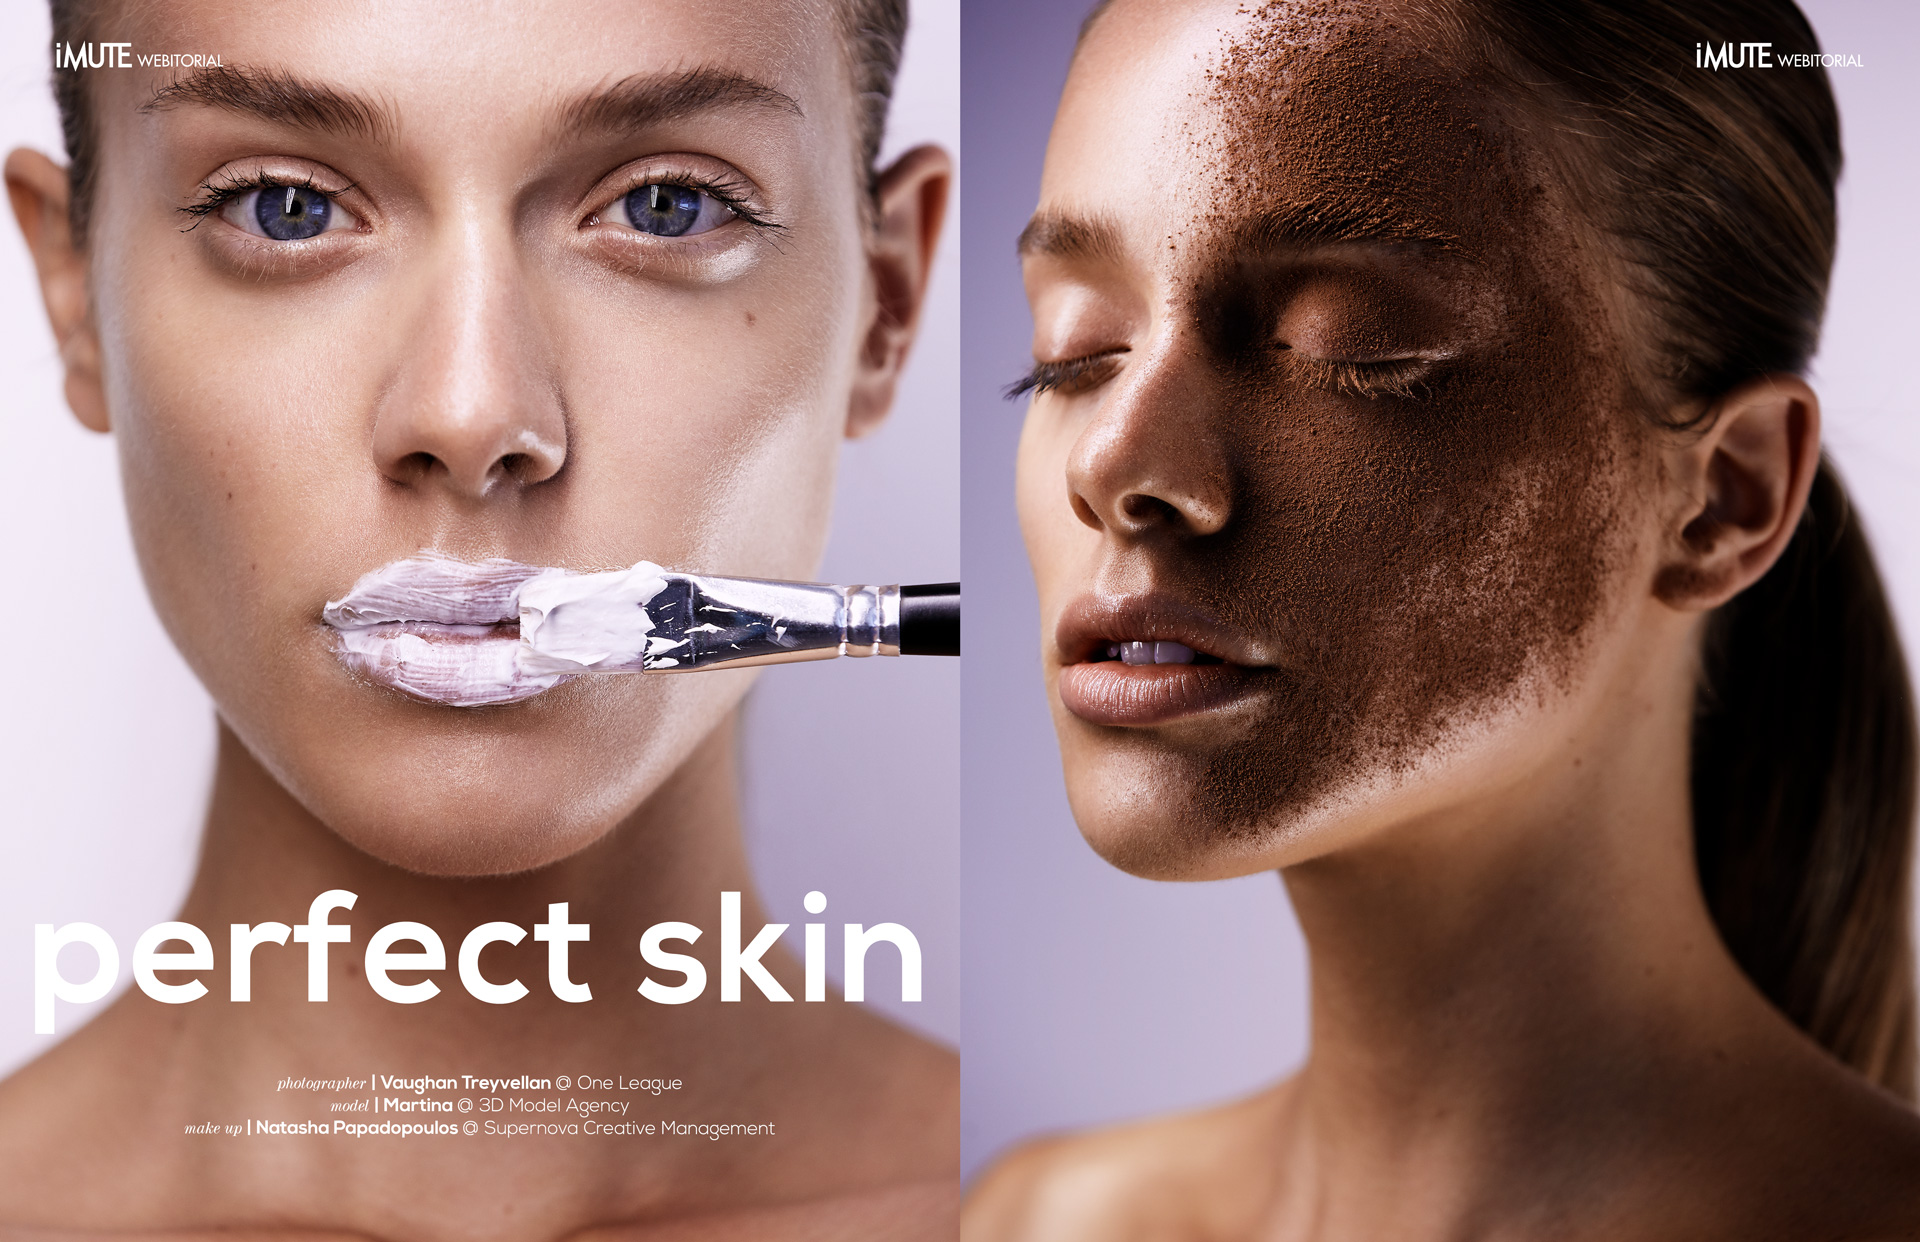 perfect skin webitorial for iMute Magazine Photographer | Vaughan Treyvellan @ One League Model | Martina @ 3D Model Agency Make up | Natasha Papadopoulos @ Supernova Creative Management